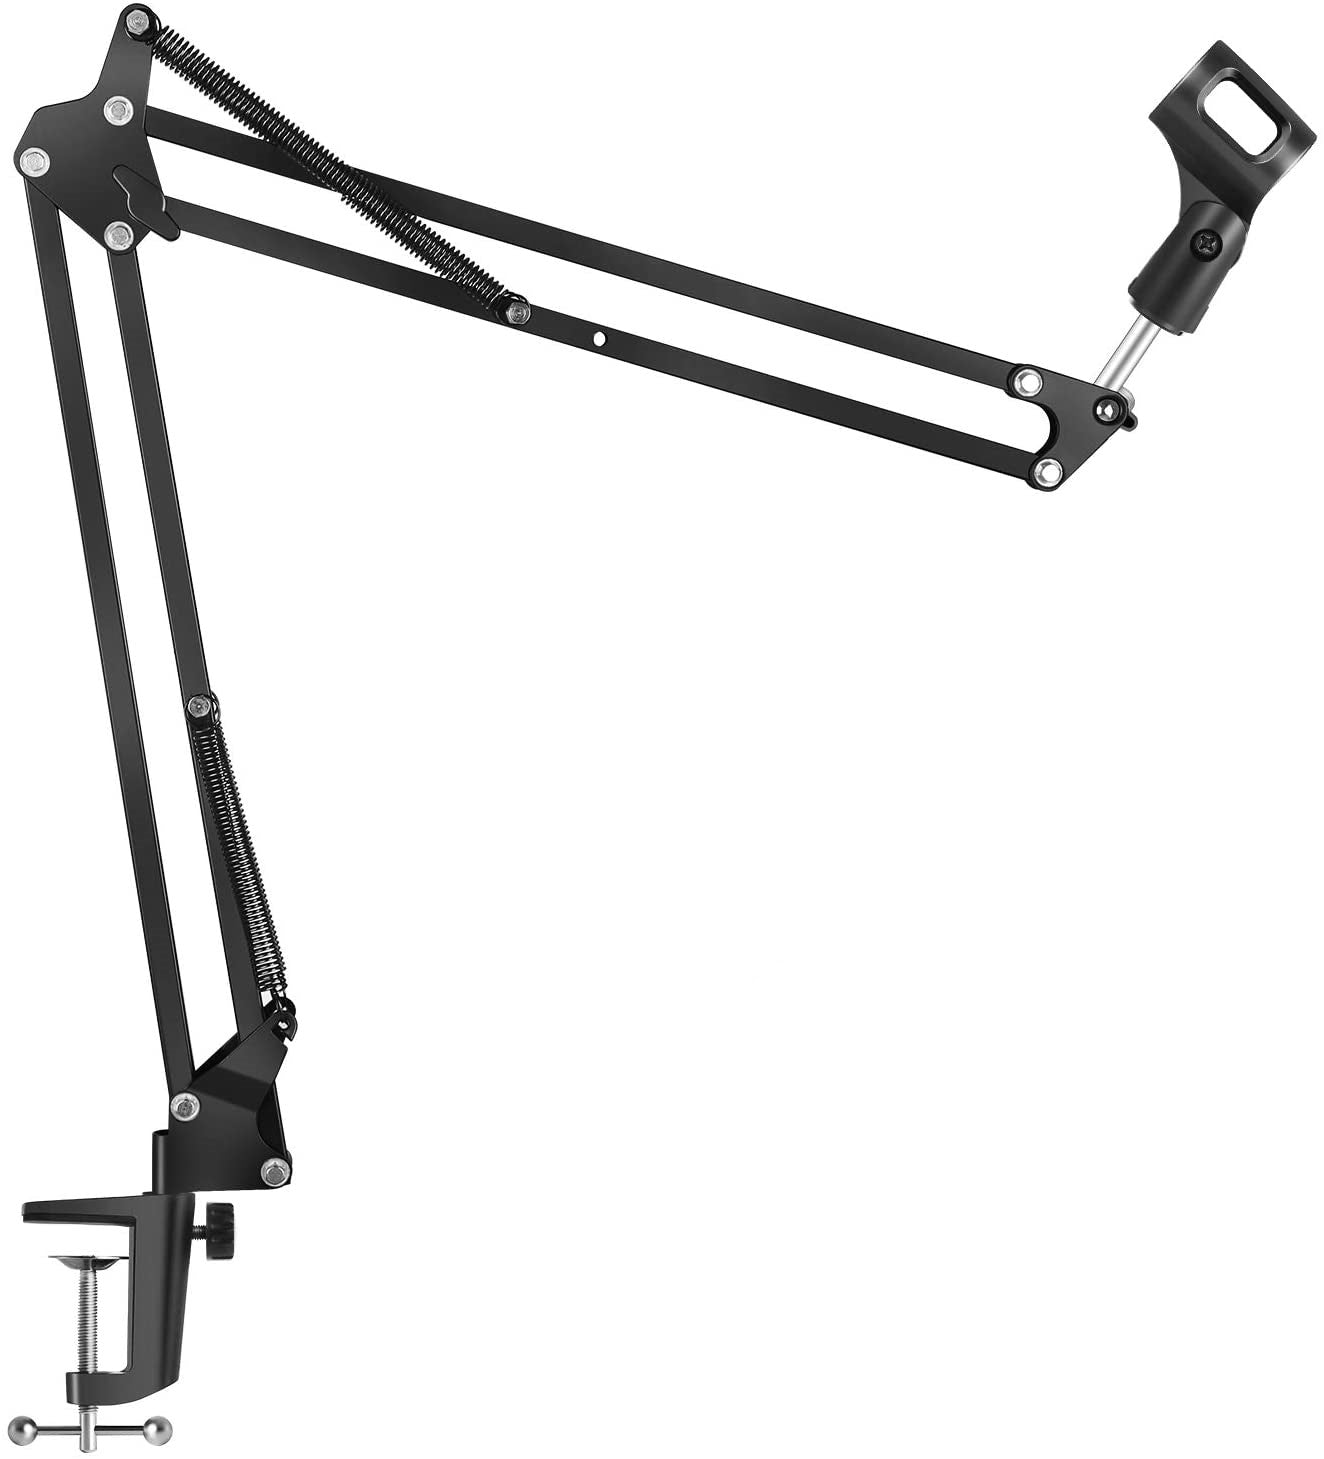 Ntech C-Clamp Adjustable Desk Microphone Stand